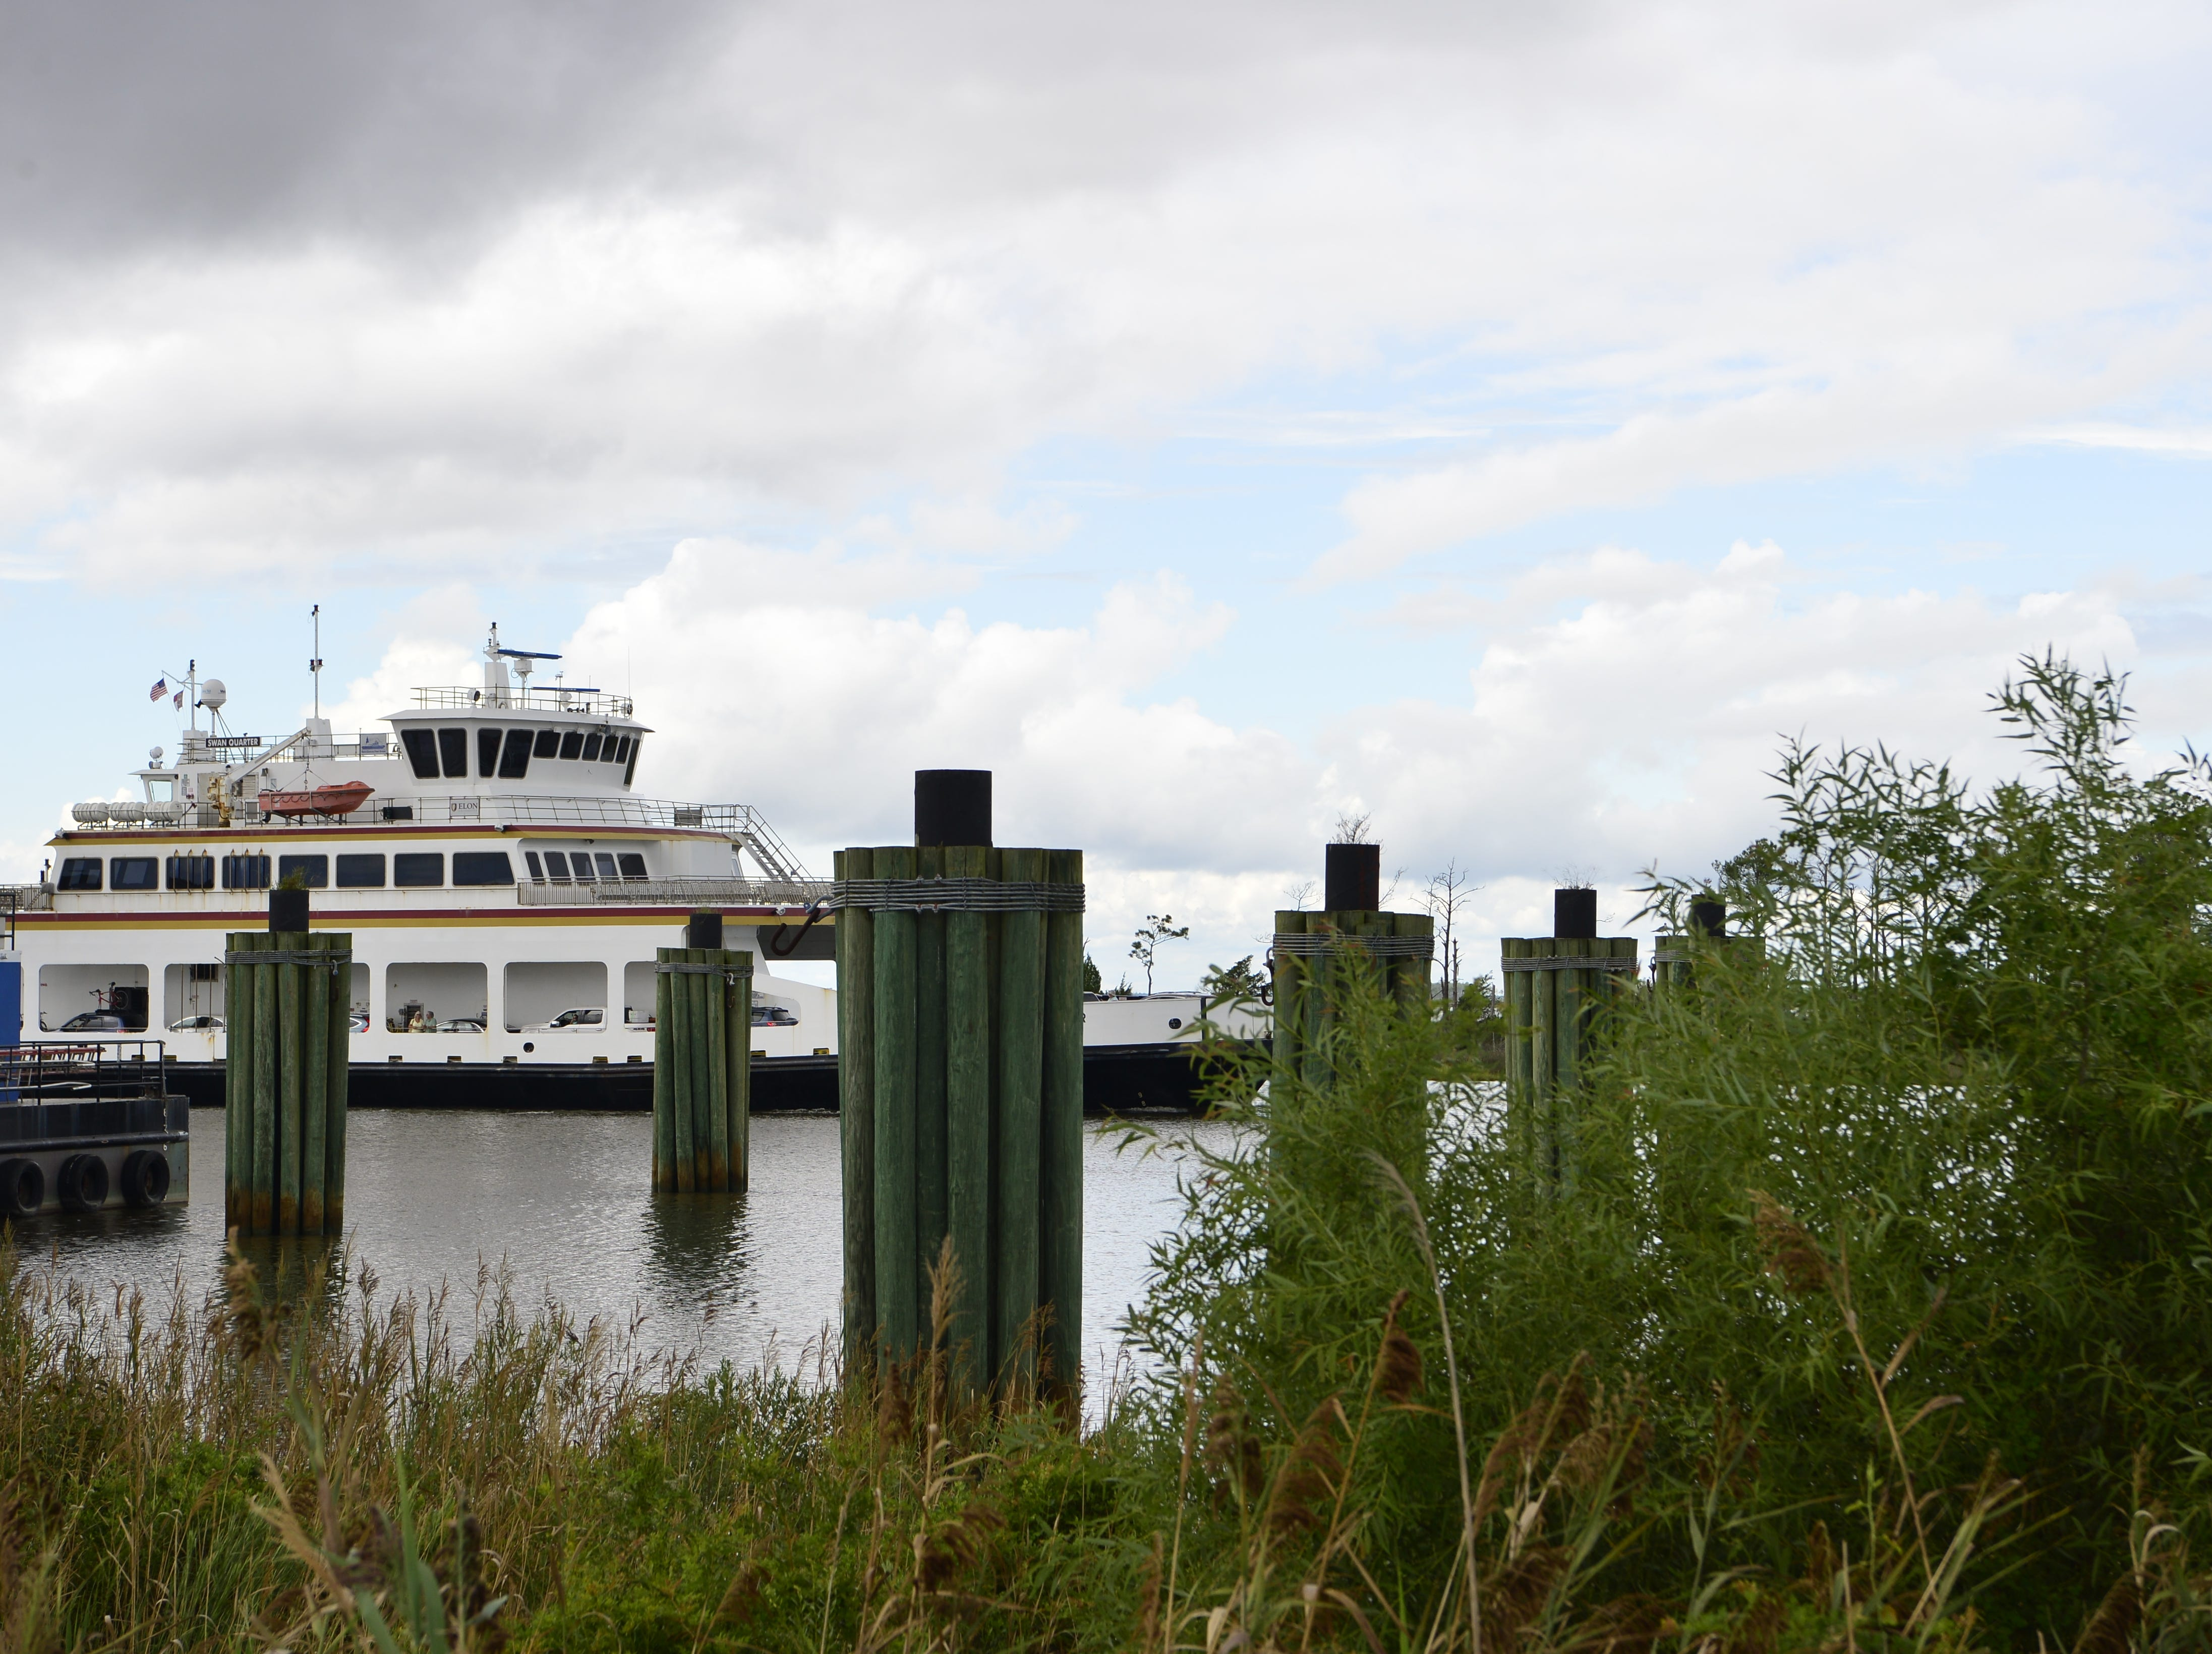 The Swan Quarter ferry arrives at the terminal carrying a full load of passengers from Ocracoke Island after the mandatory evacuation order in preparation for hurricane Florence.